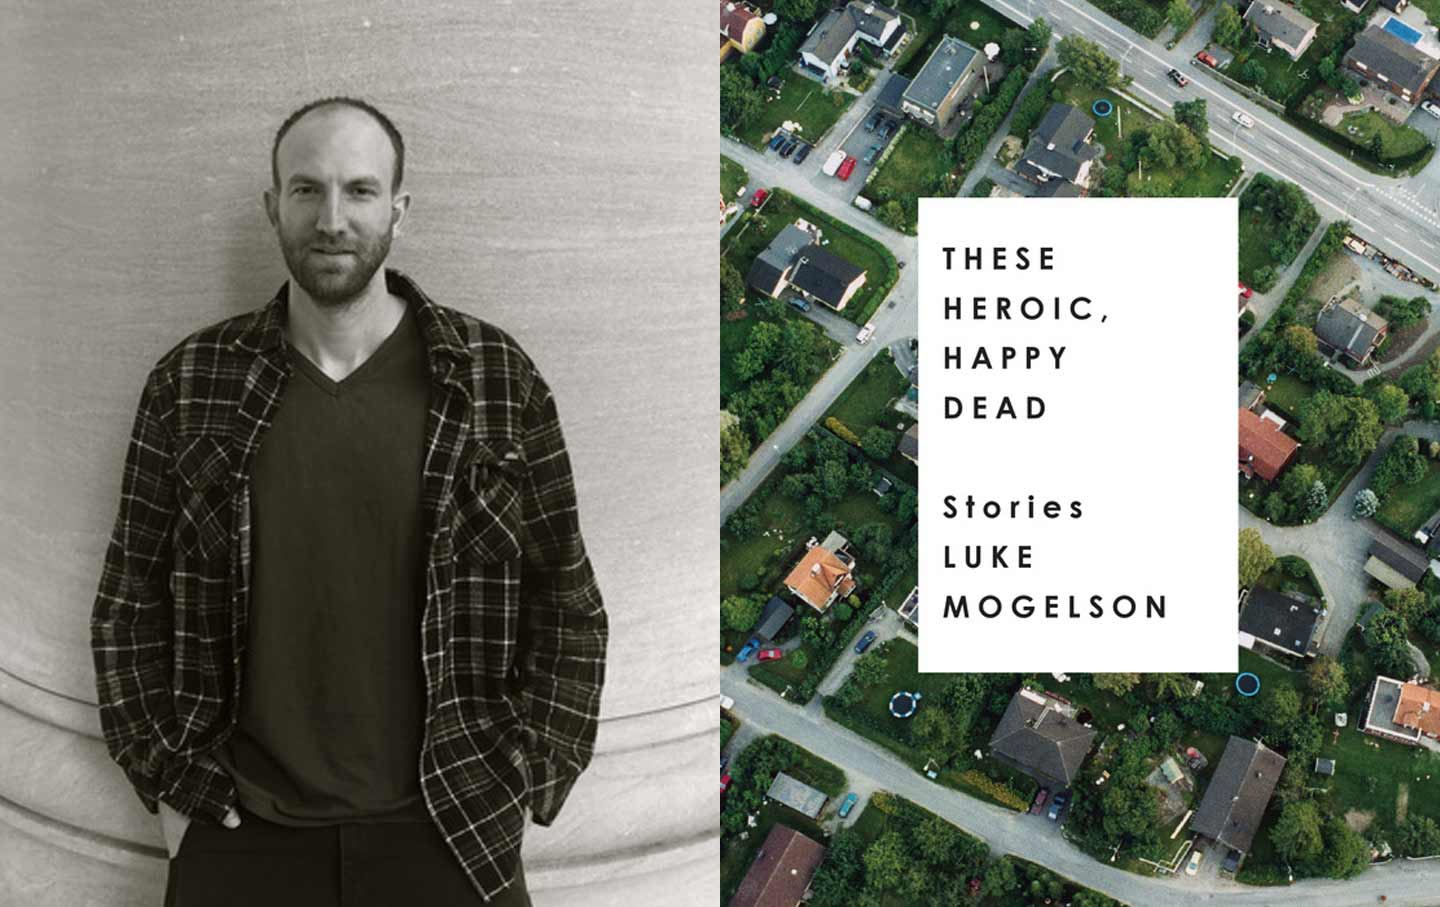 Author Luke Mogelson and his book These Heroic, Happy Dead